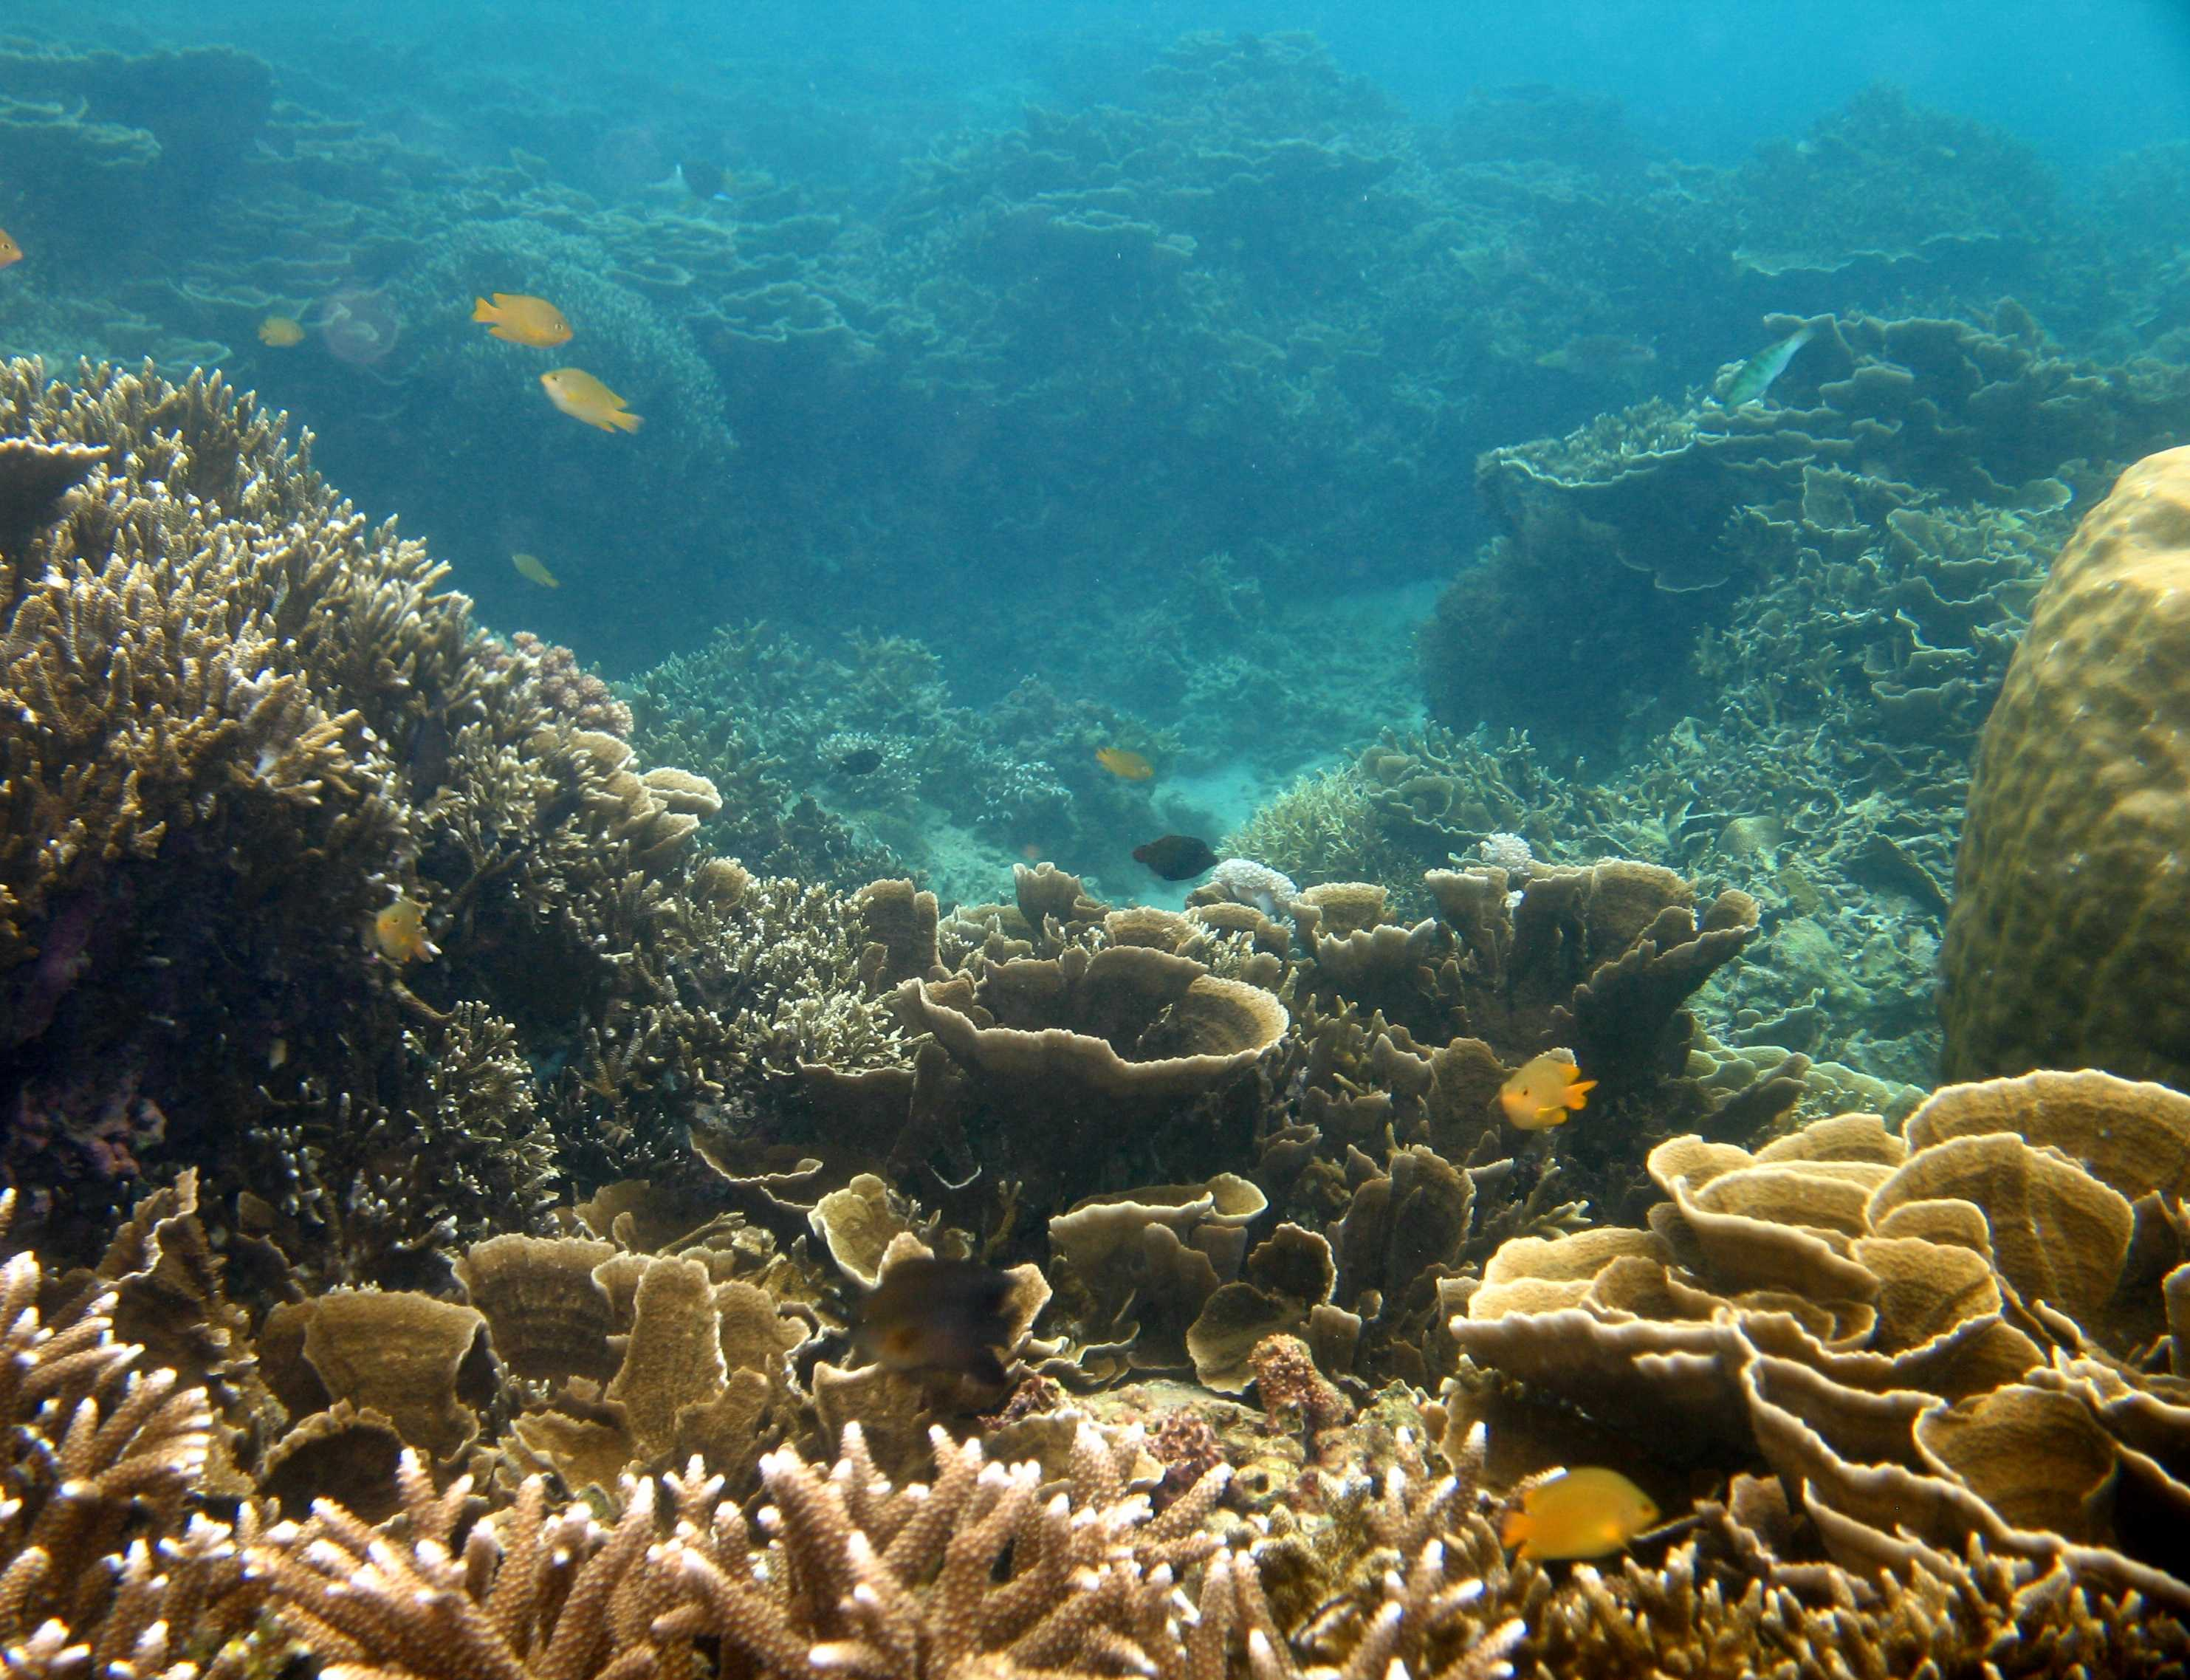 3 Factors Killing Our Coral Reef Ecosystems